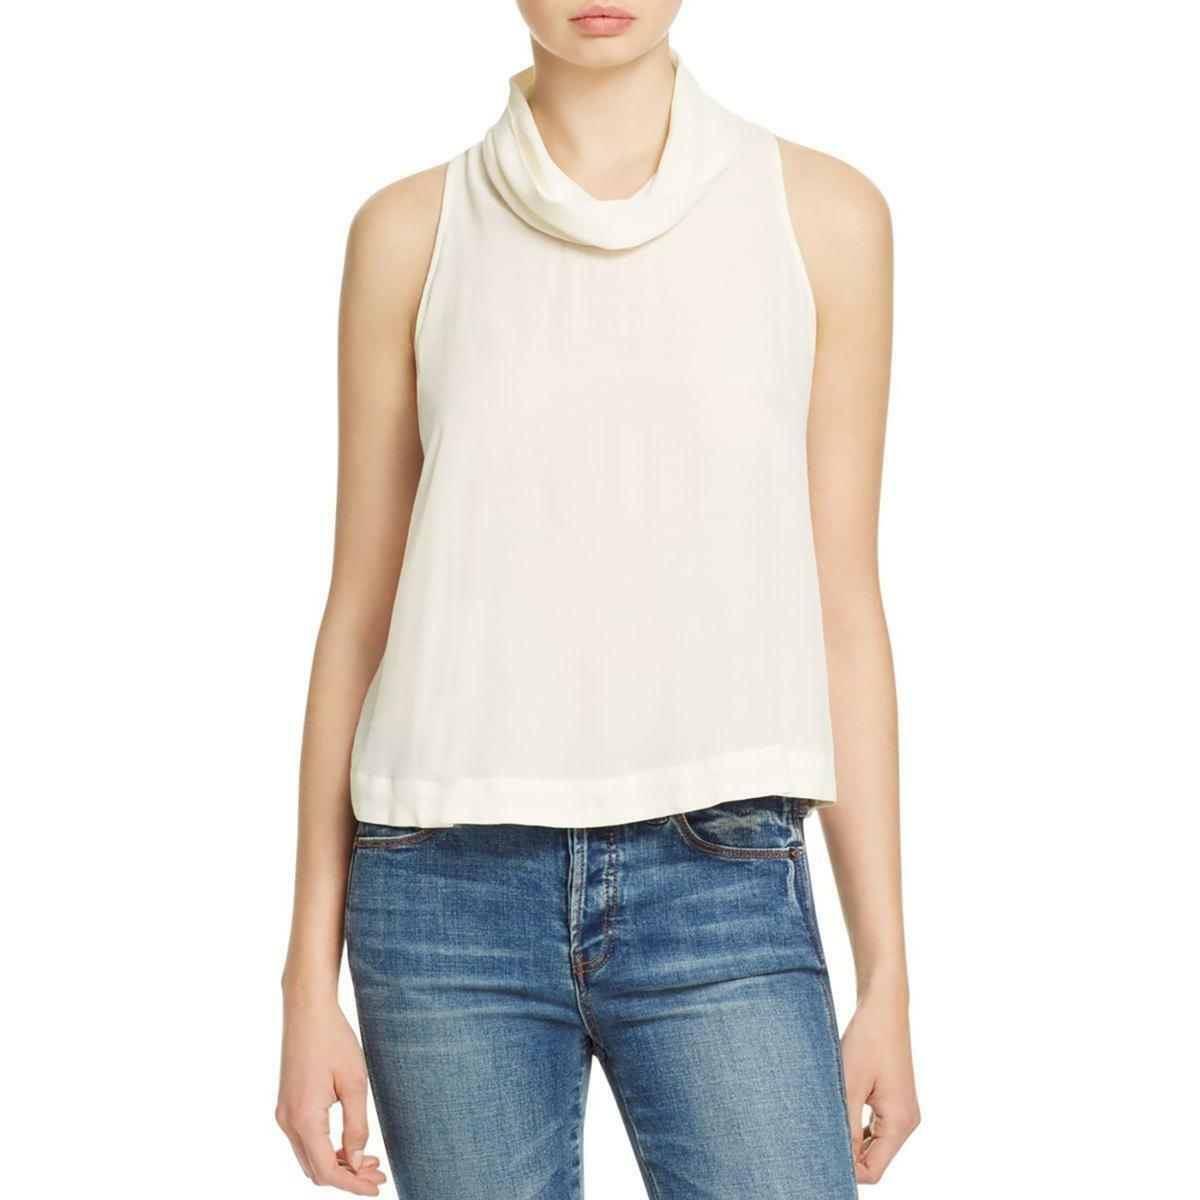 Free People New Womens Ivory Cowl Neck Sleeveless Casual Shirt Top Xs Tedo